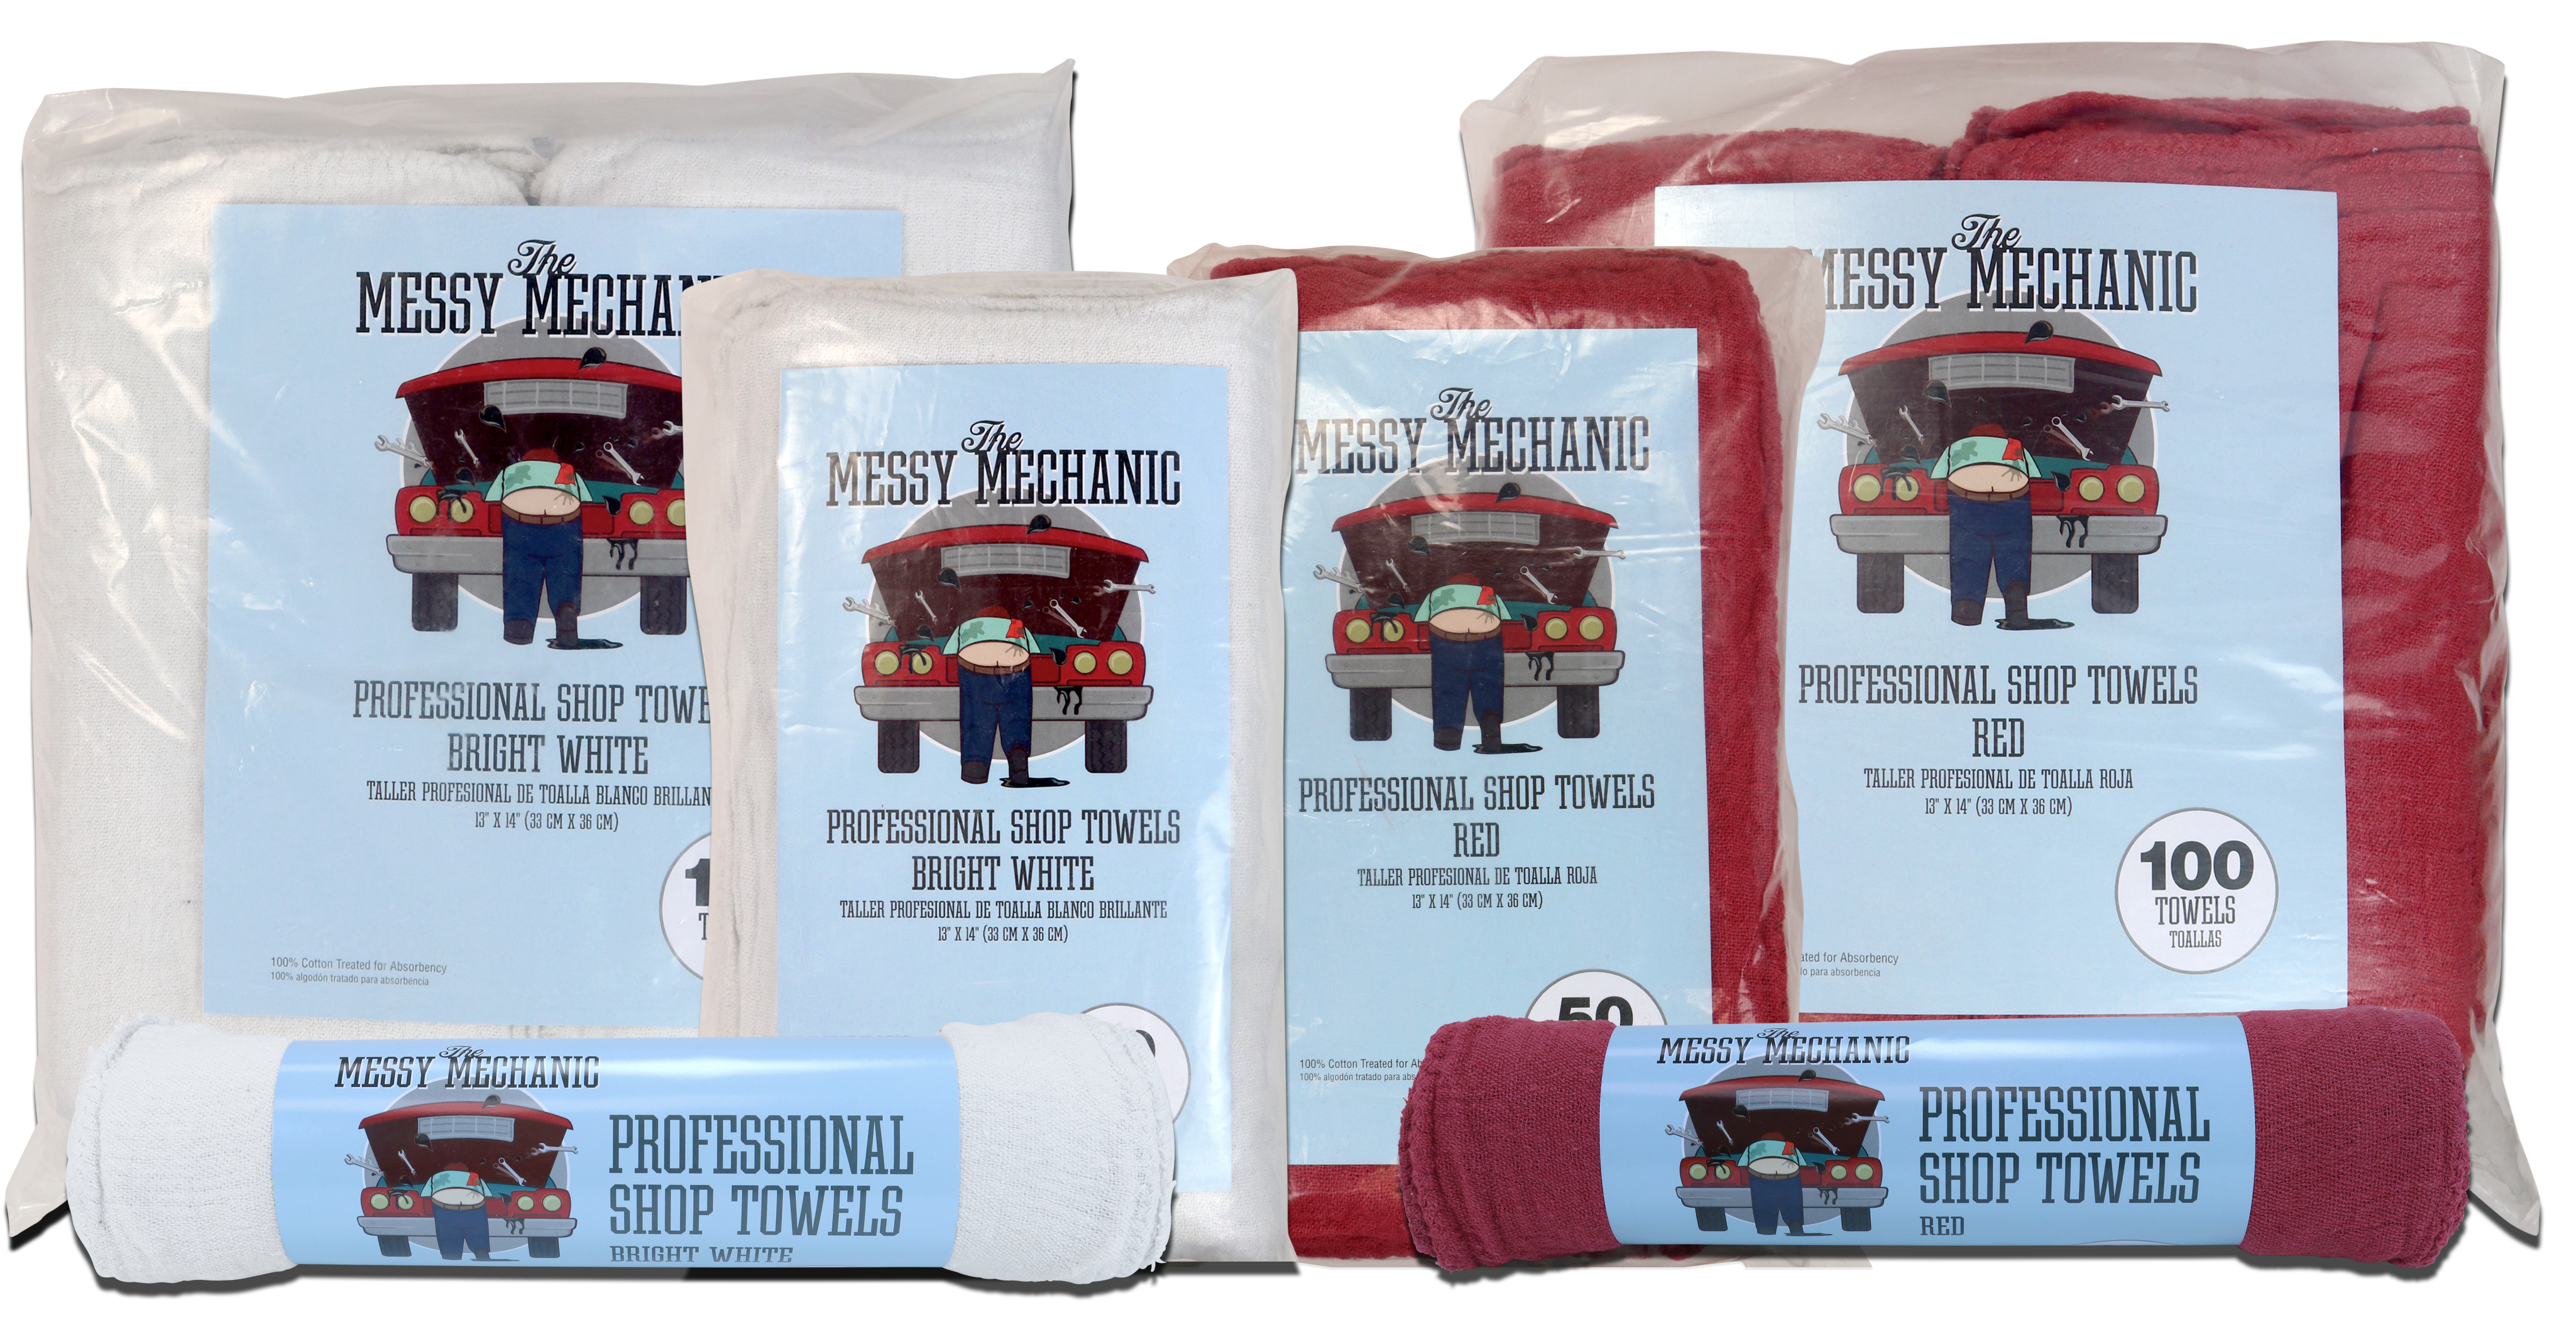 Messy Mechanic Group packaged